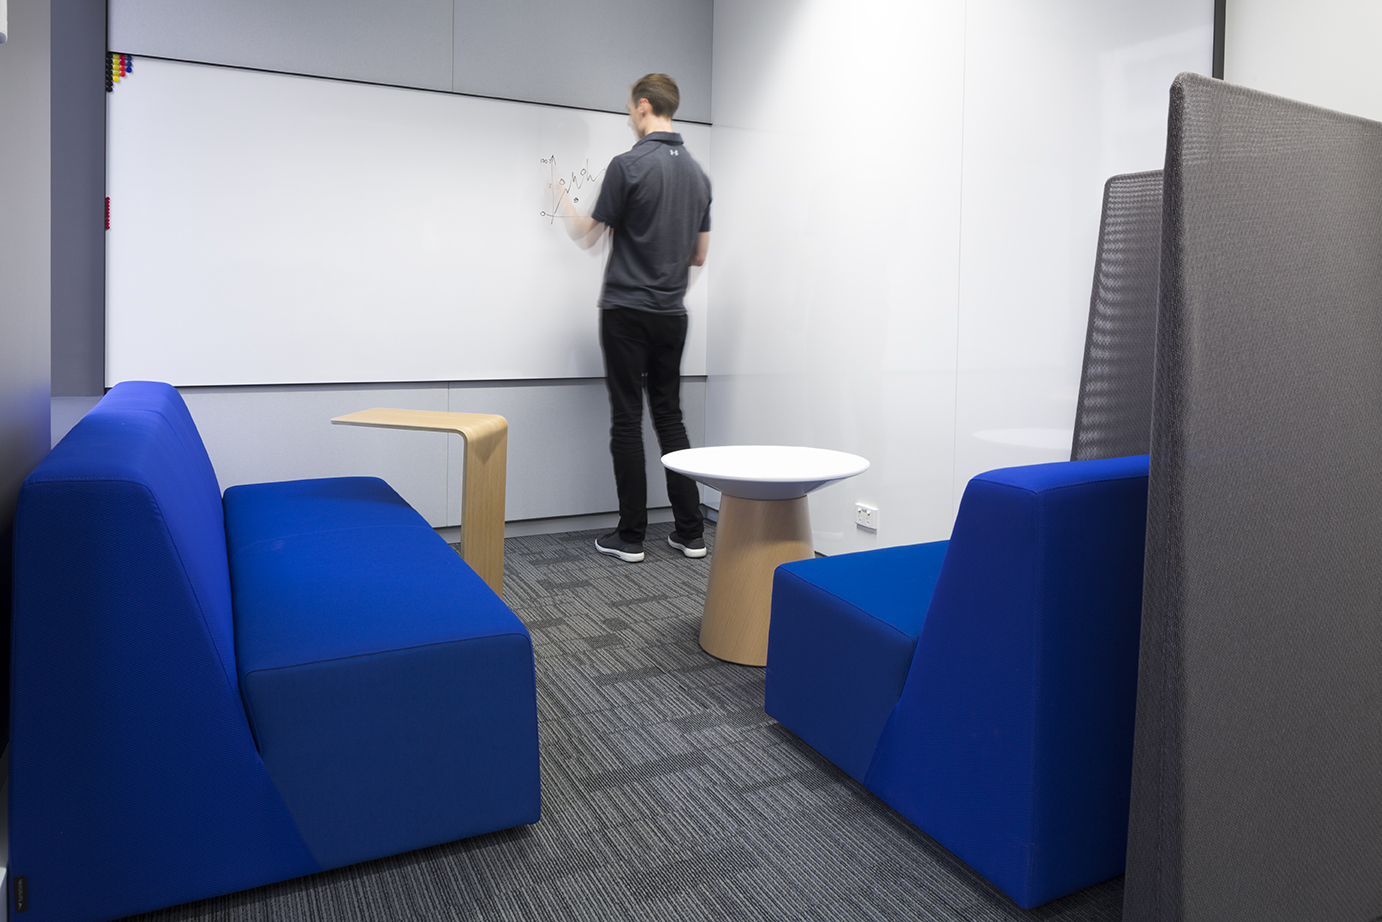 A meeting room at BNY Mellon designed by Tall Architects and optimised for collaboration.